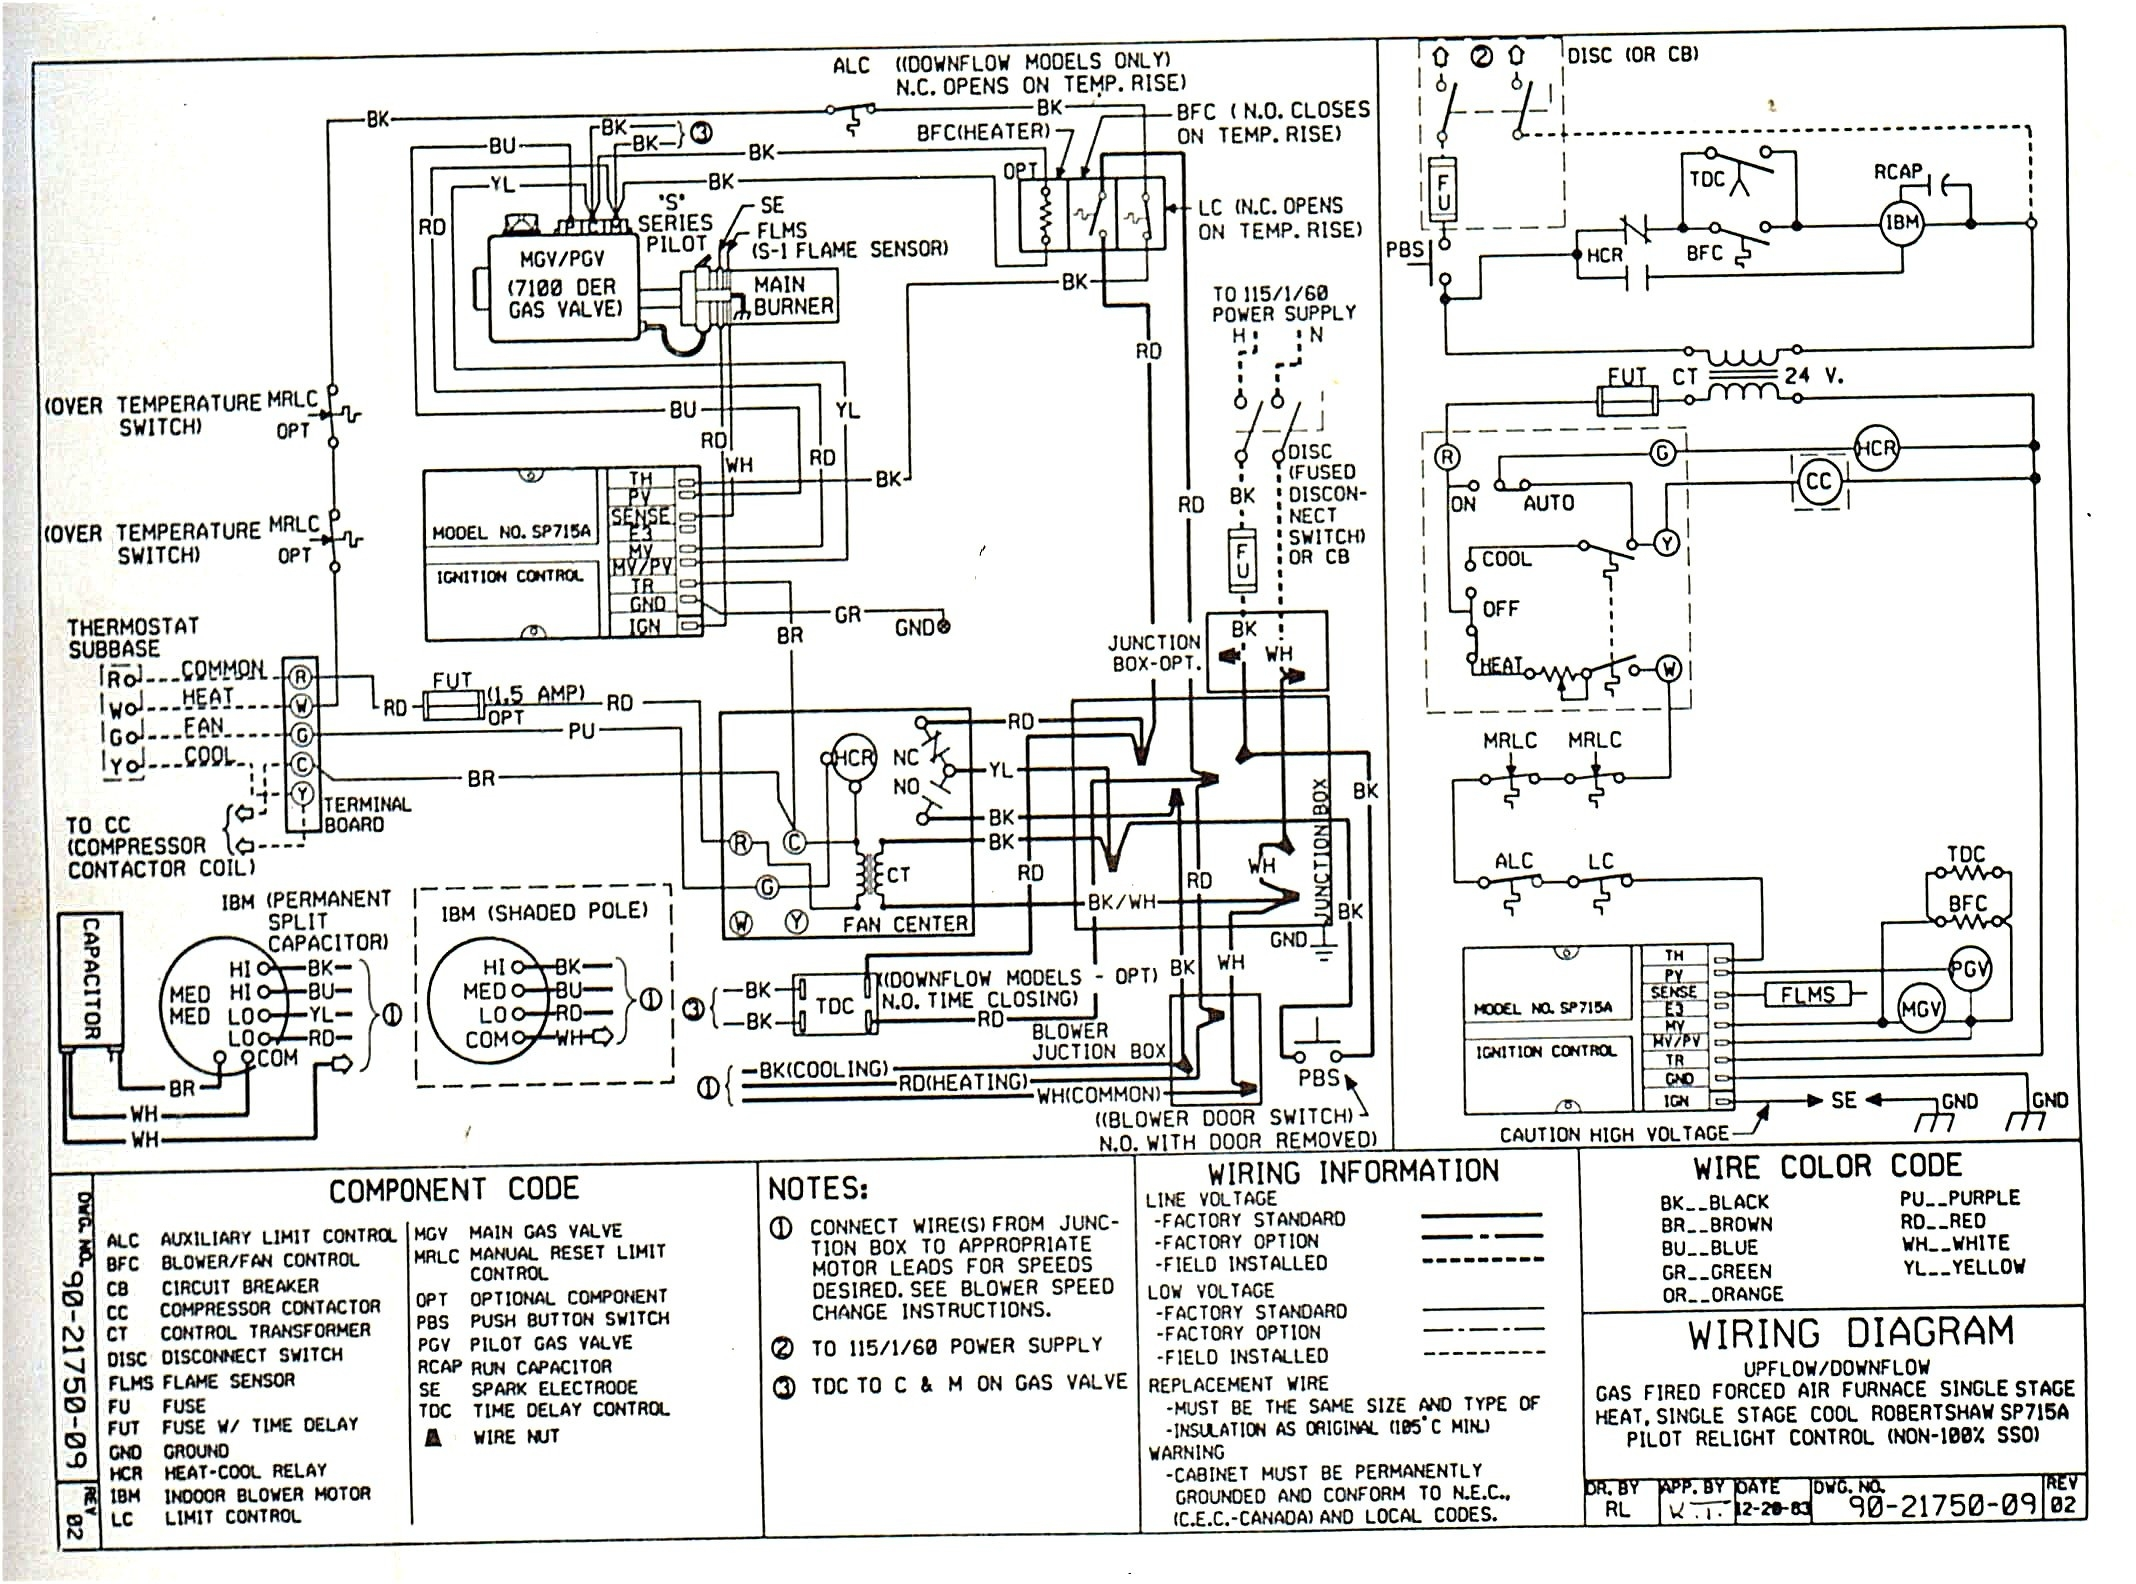 small resolution of schematic tempstar tempstar for wiring heil nulk075dg05 wiringschematic tempstar tempstar for wiring heil nulk075dg05 wiring diagram